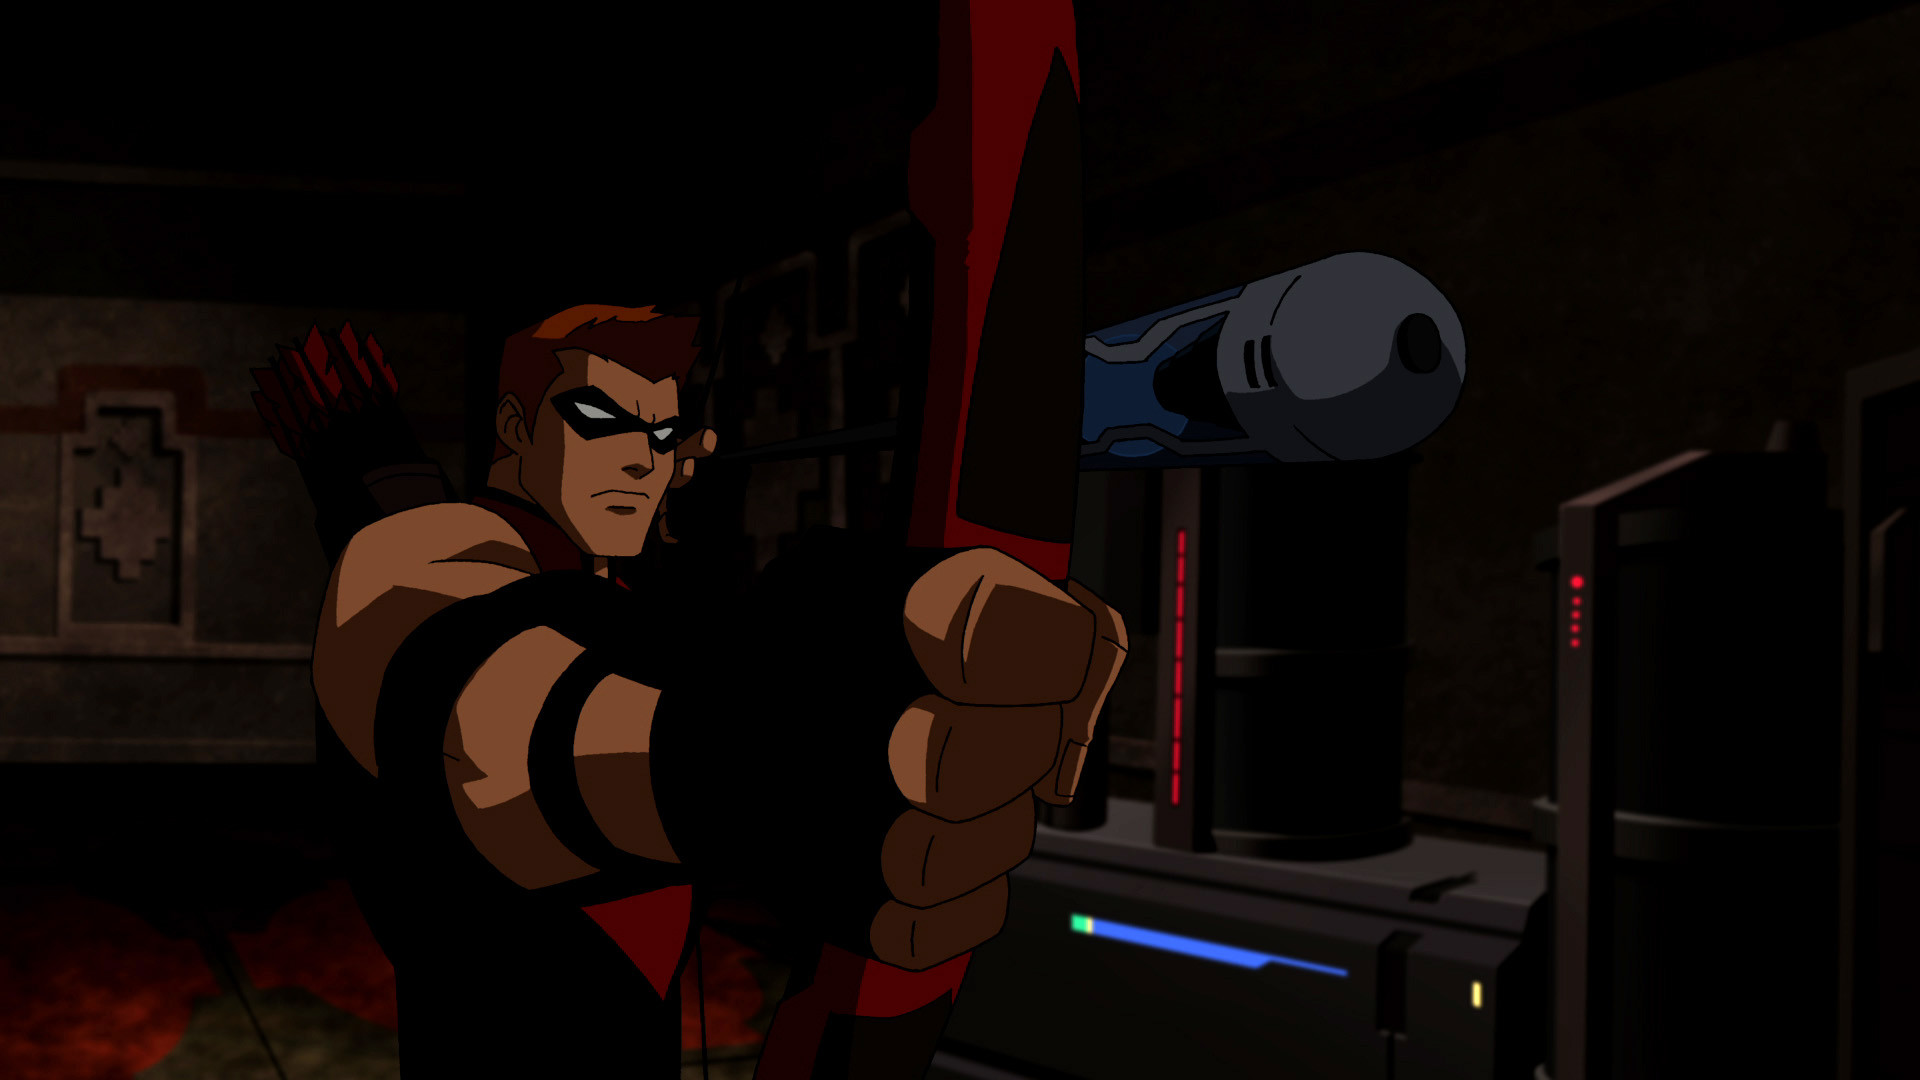 1920x1080 Young Justice: Nightwing/Robin vs Red Arrow/Arsenal